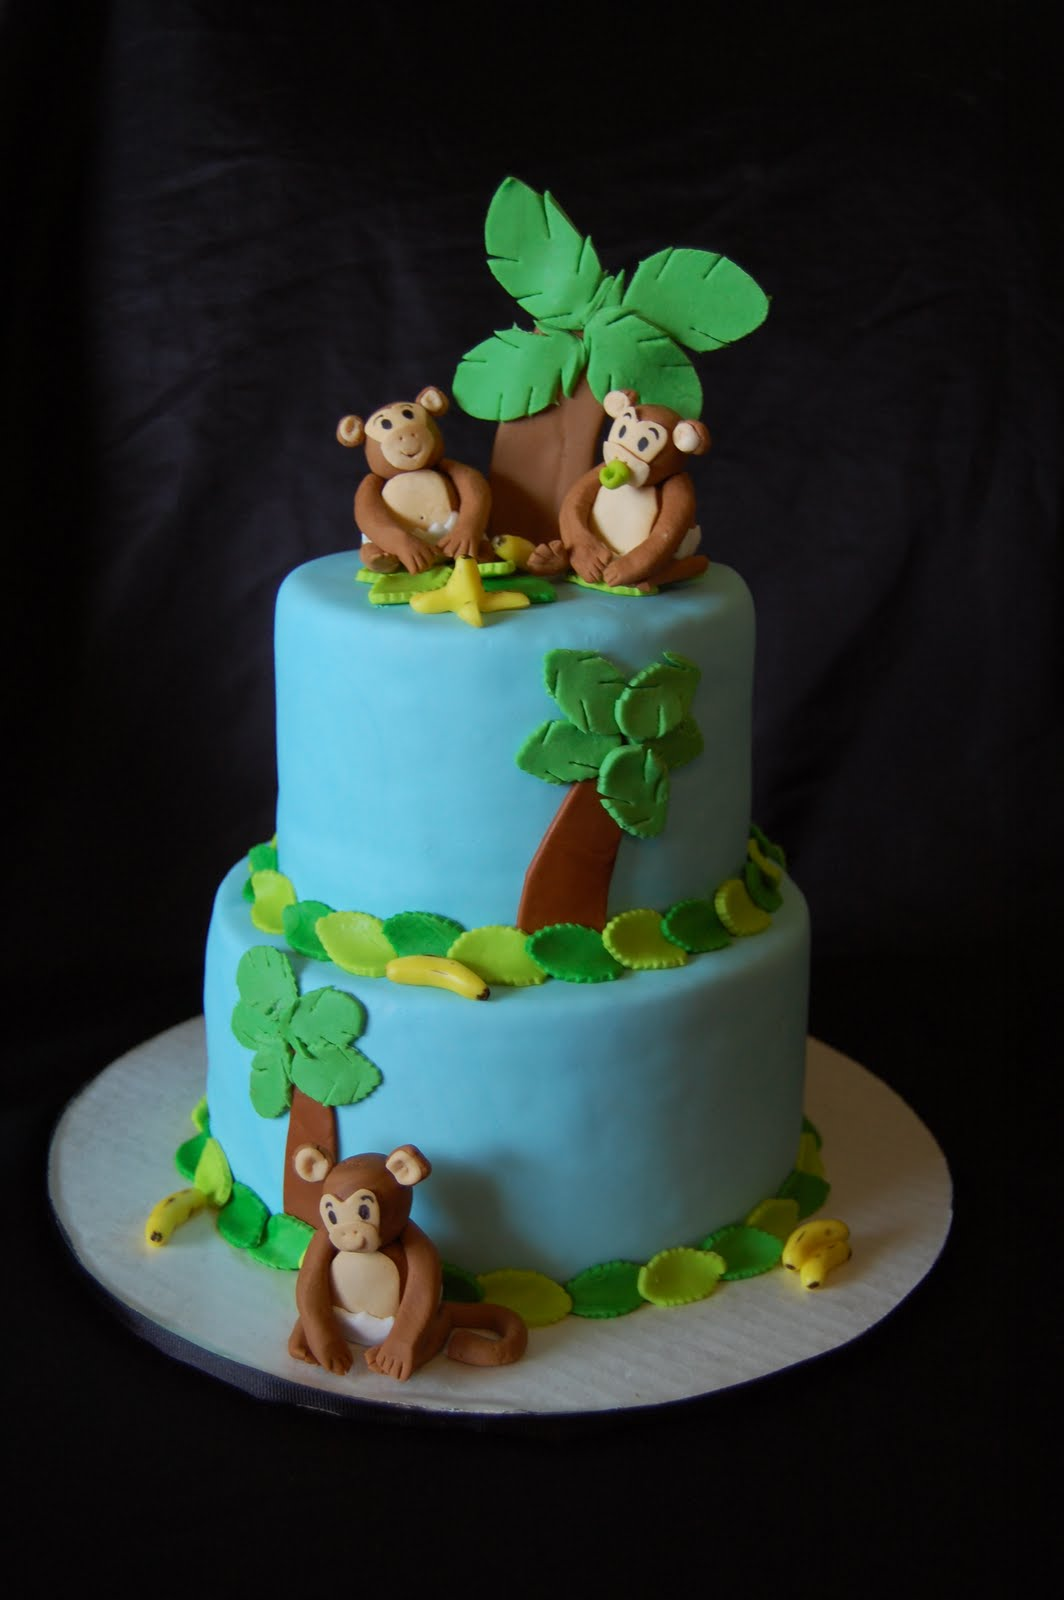 A Piece Of Cake: Monkeys, Elephants And Horses, Oh My